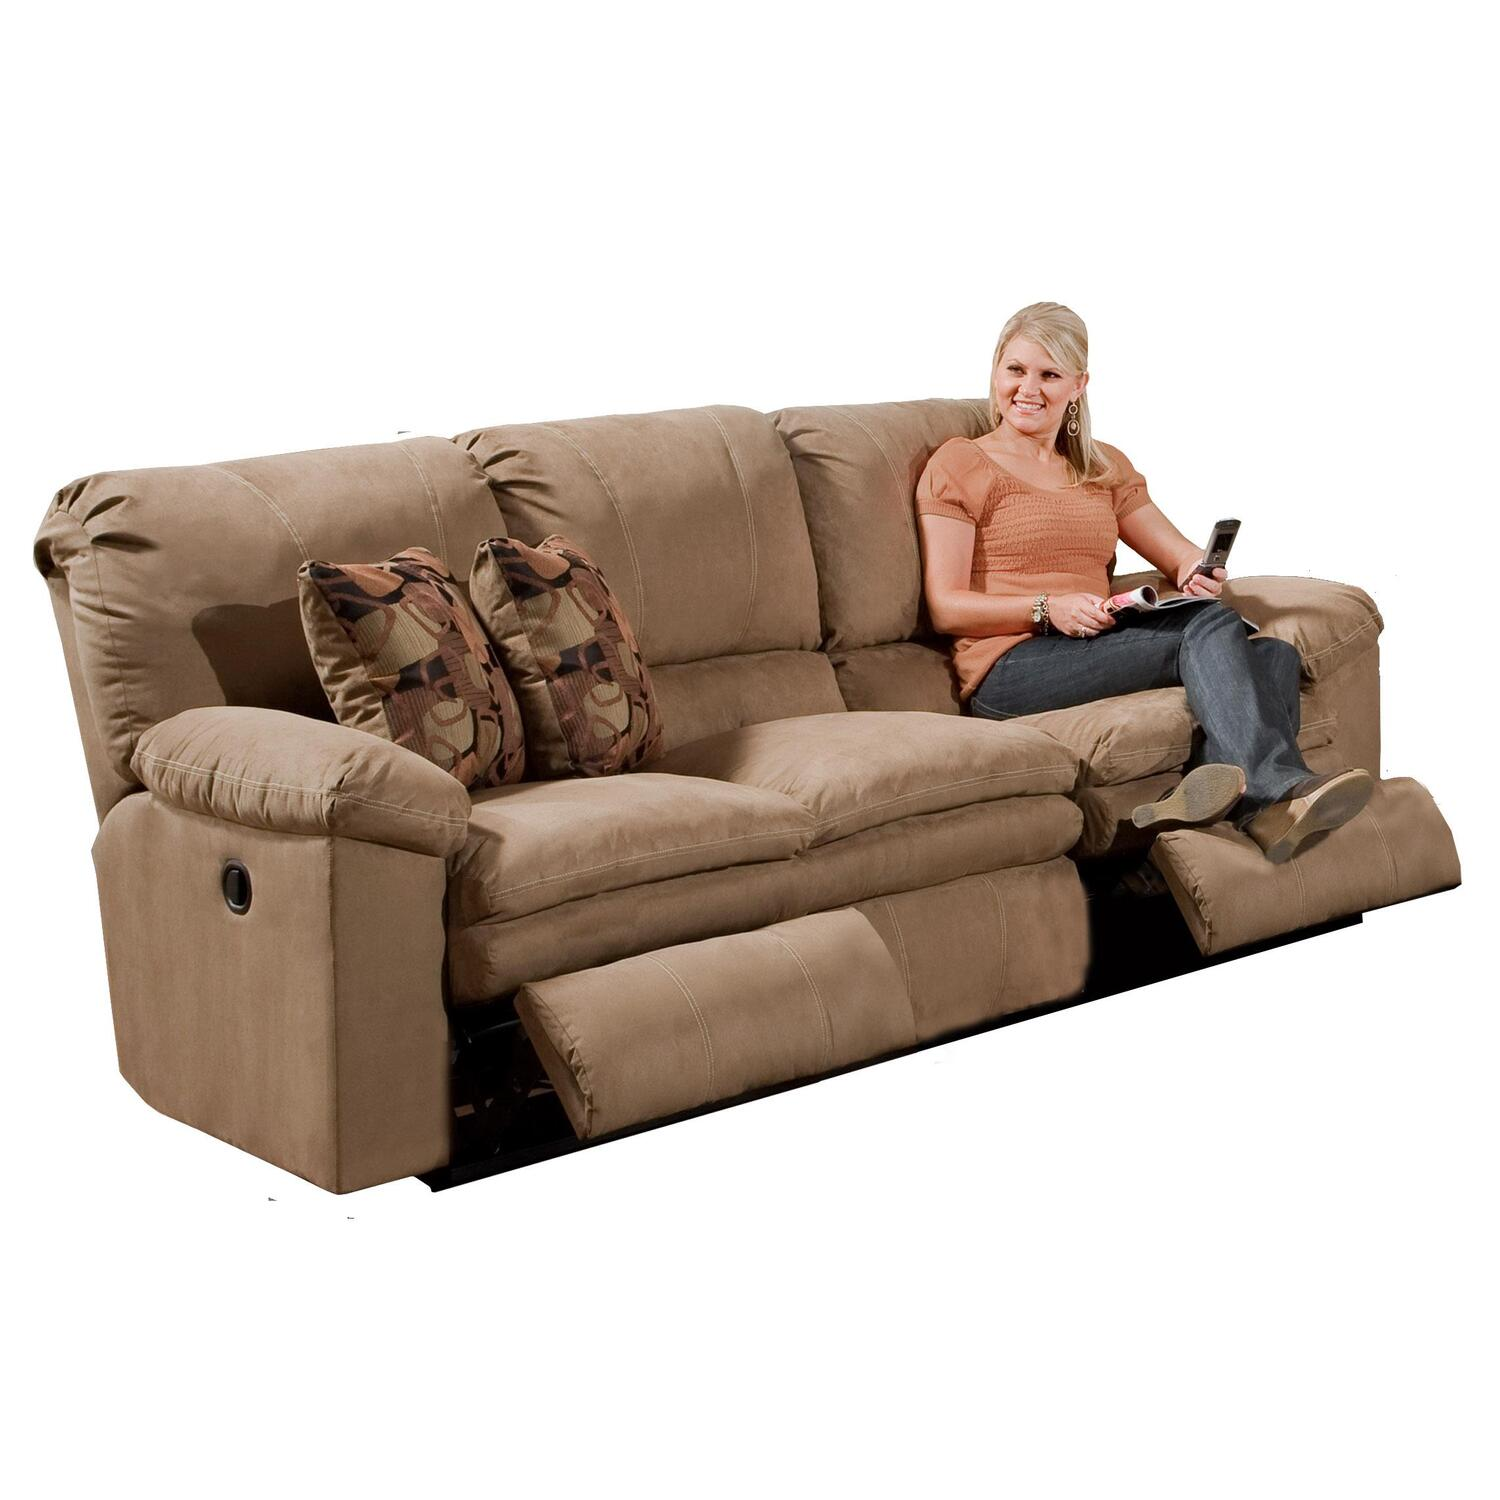 Catnapper impulse power reclining sofa by oj commerce for Catnapper cloud nine chaise recliner